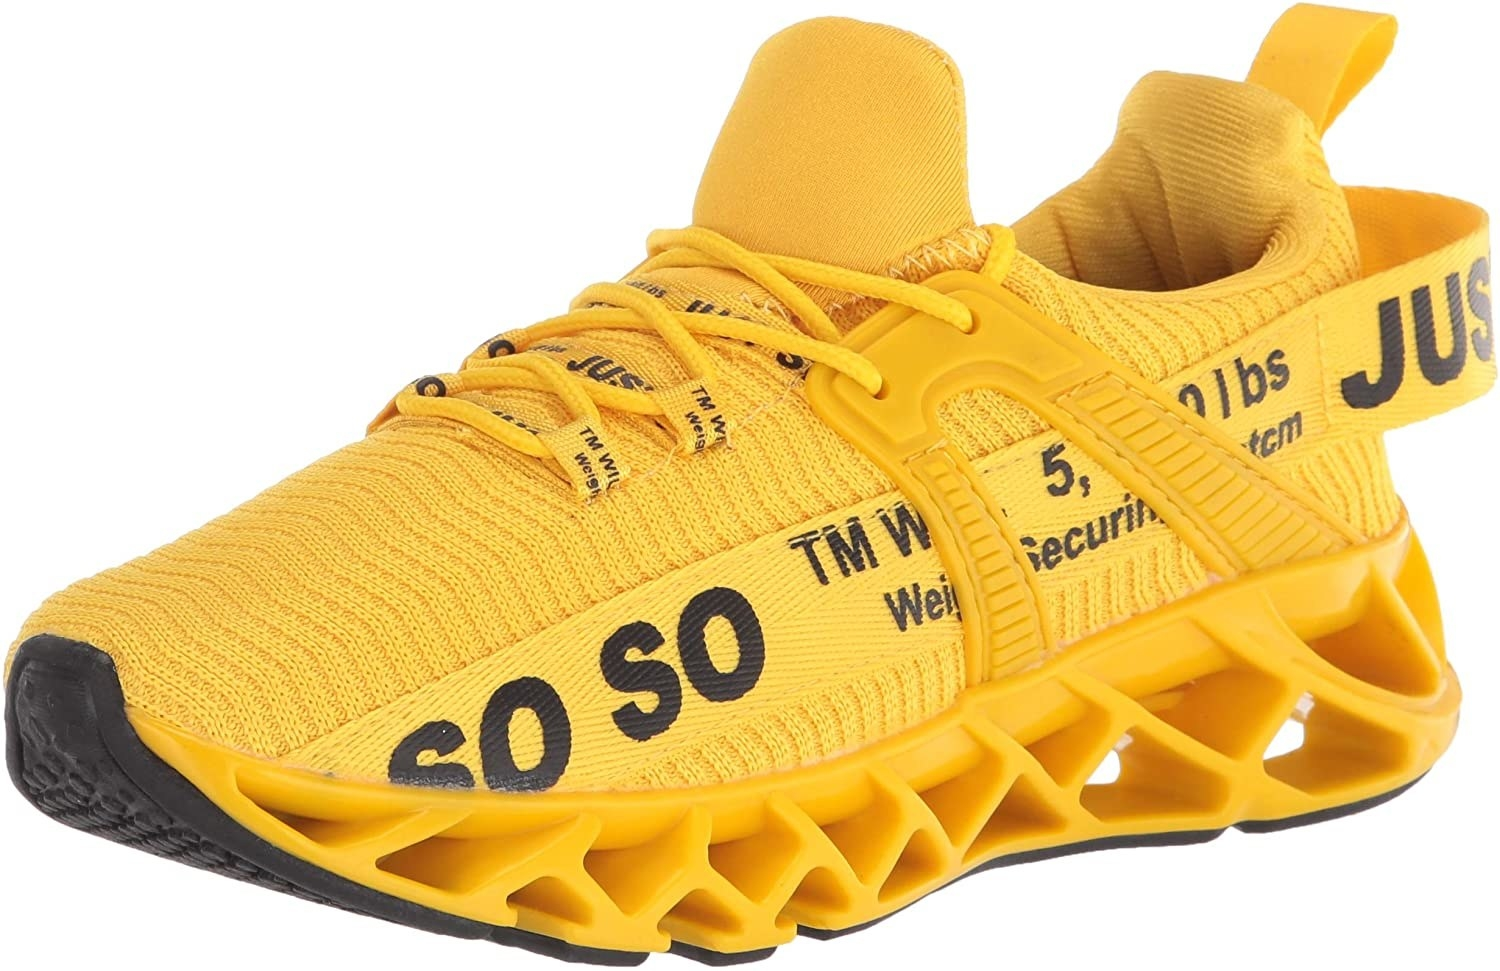 Bright yellow sneaker with words in black and geometric sole